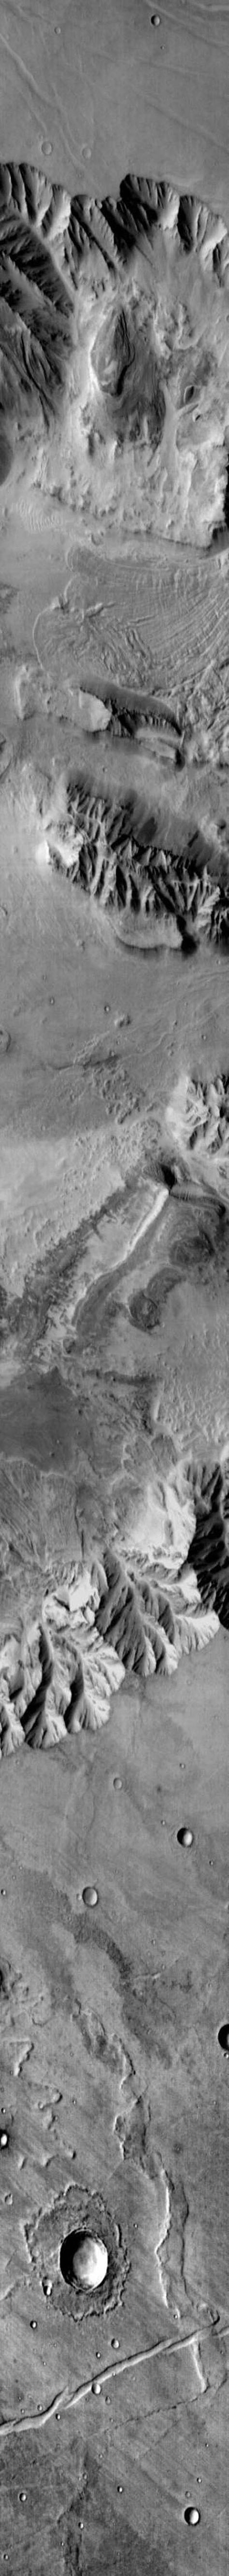 This image from NASA's Mars Odyssey shows Coprates Chasma, part of Valles Marineris on Mars. There is a large landslide deposit in the northern part of the chasma.